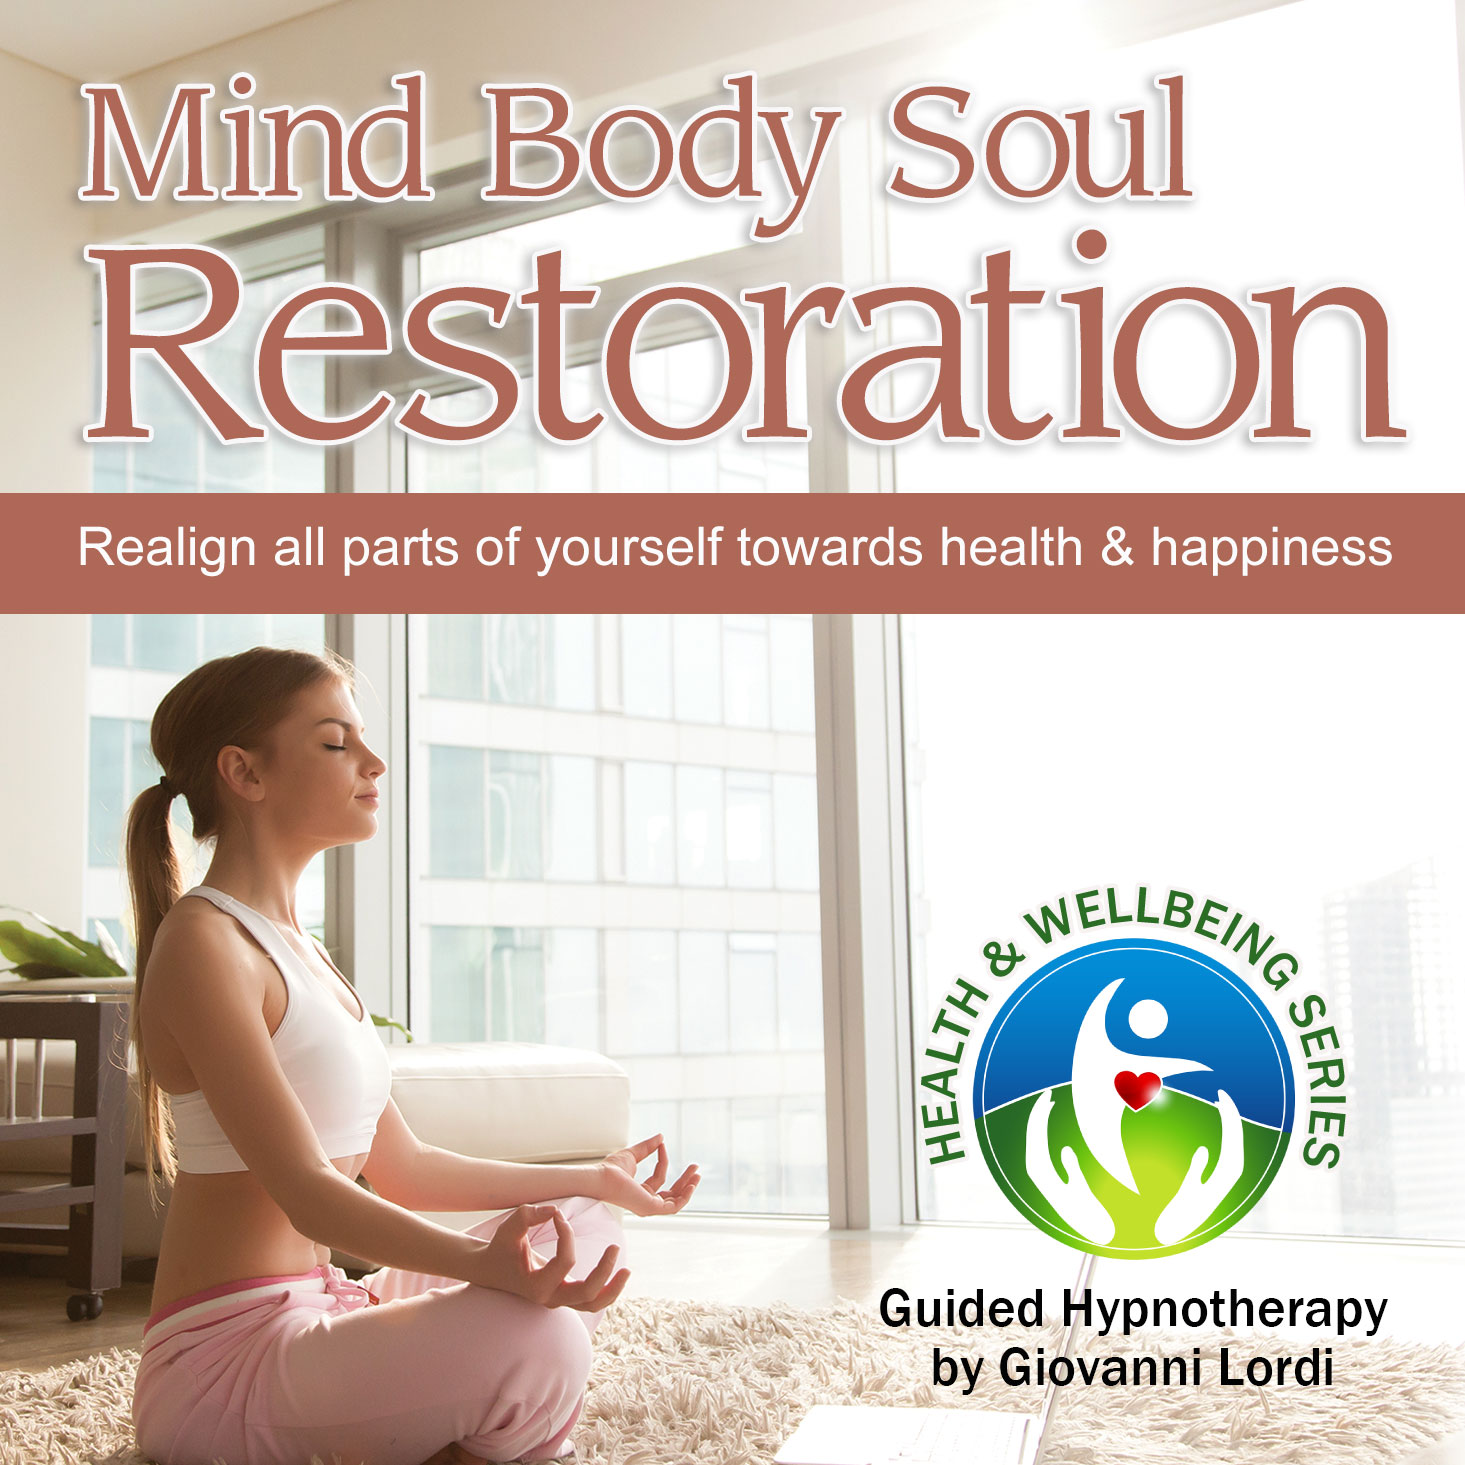 Hypnosis for Mind, Body & Soul Restoration